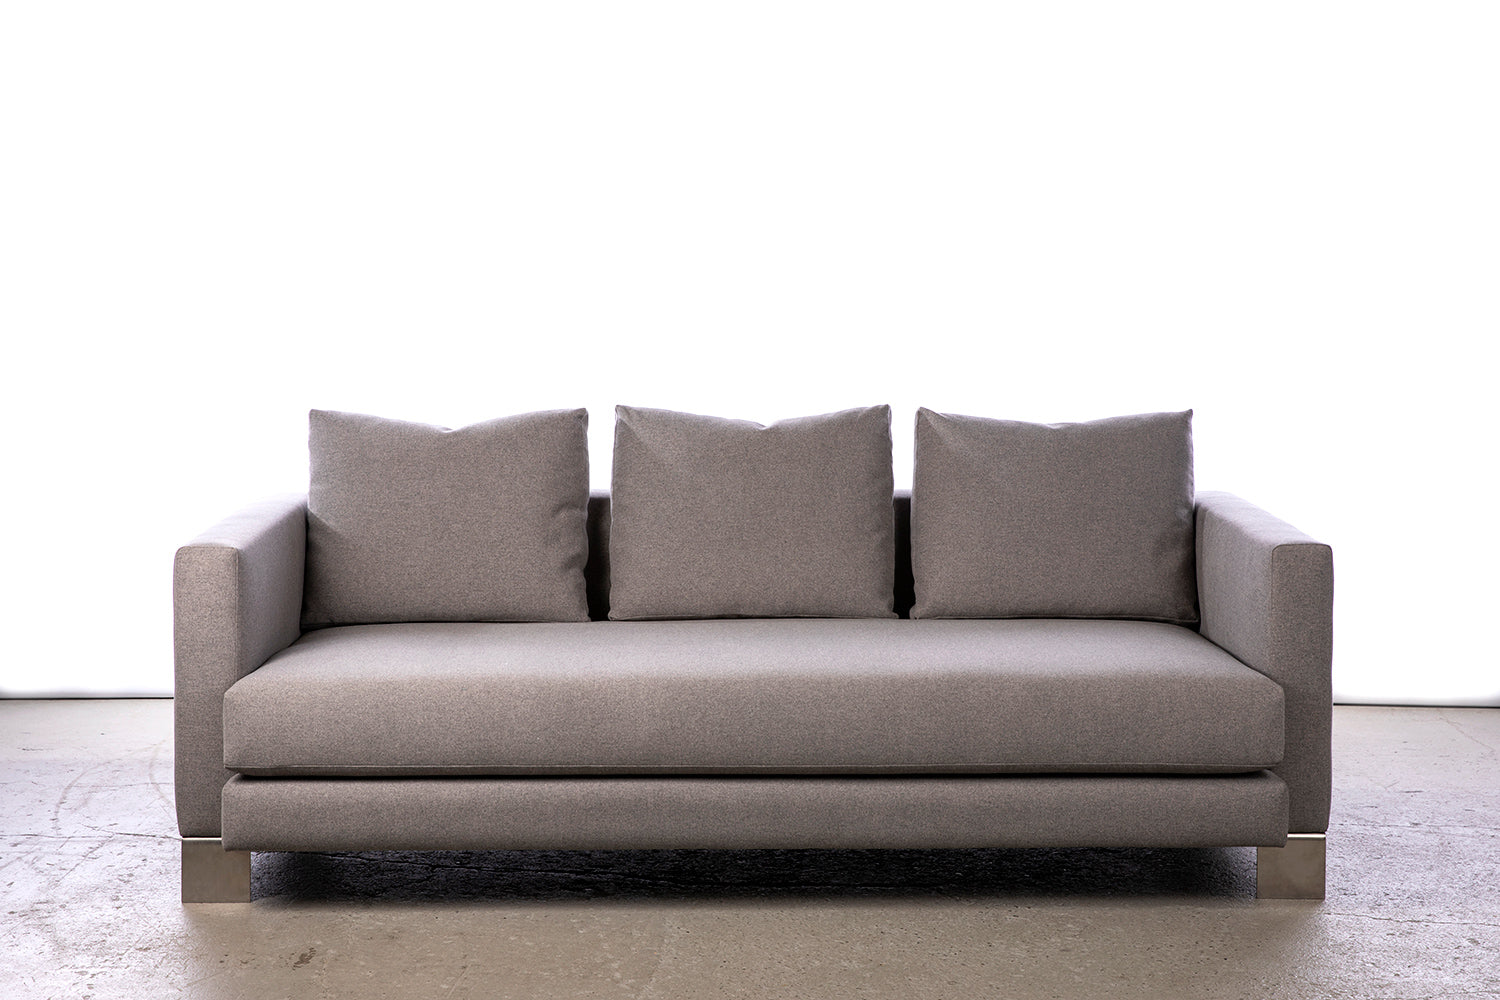 ffabb Saturday Somewhere Sofa in Wool like - Alloy fabric made in Vancouver